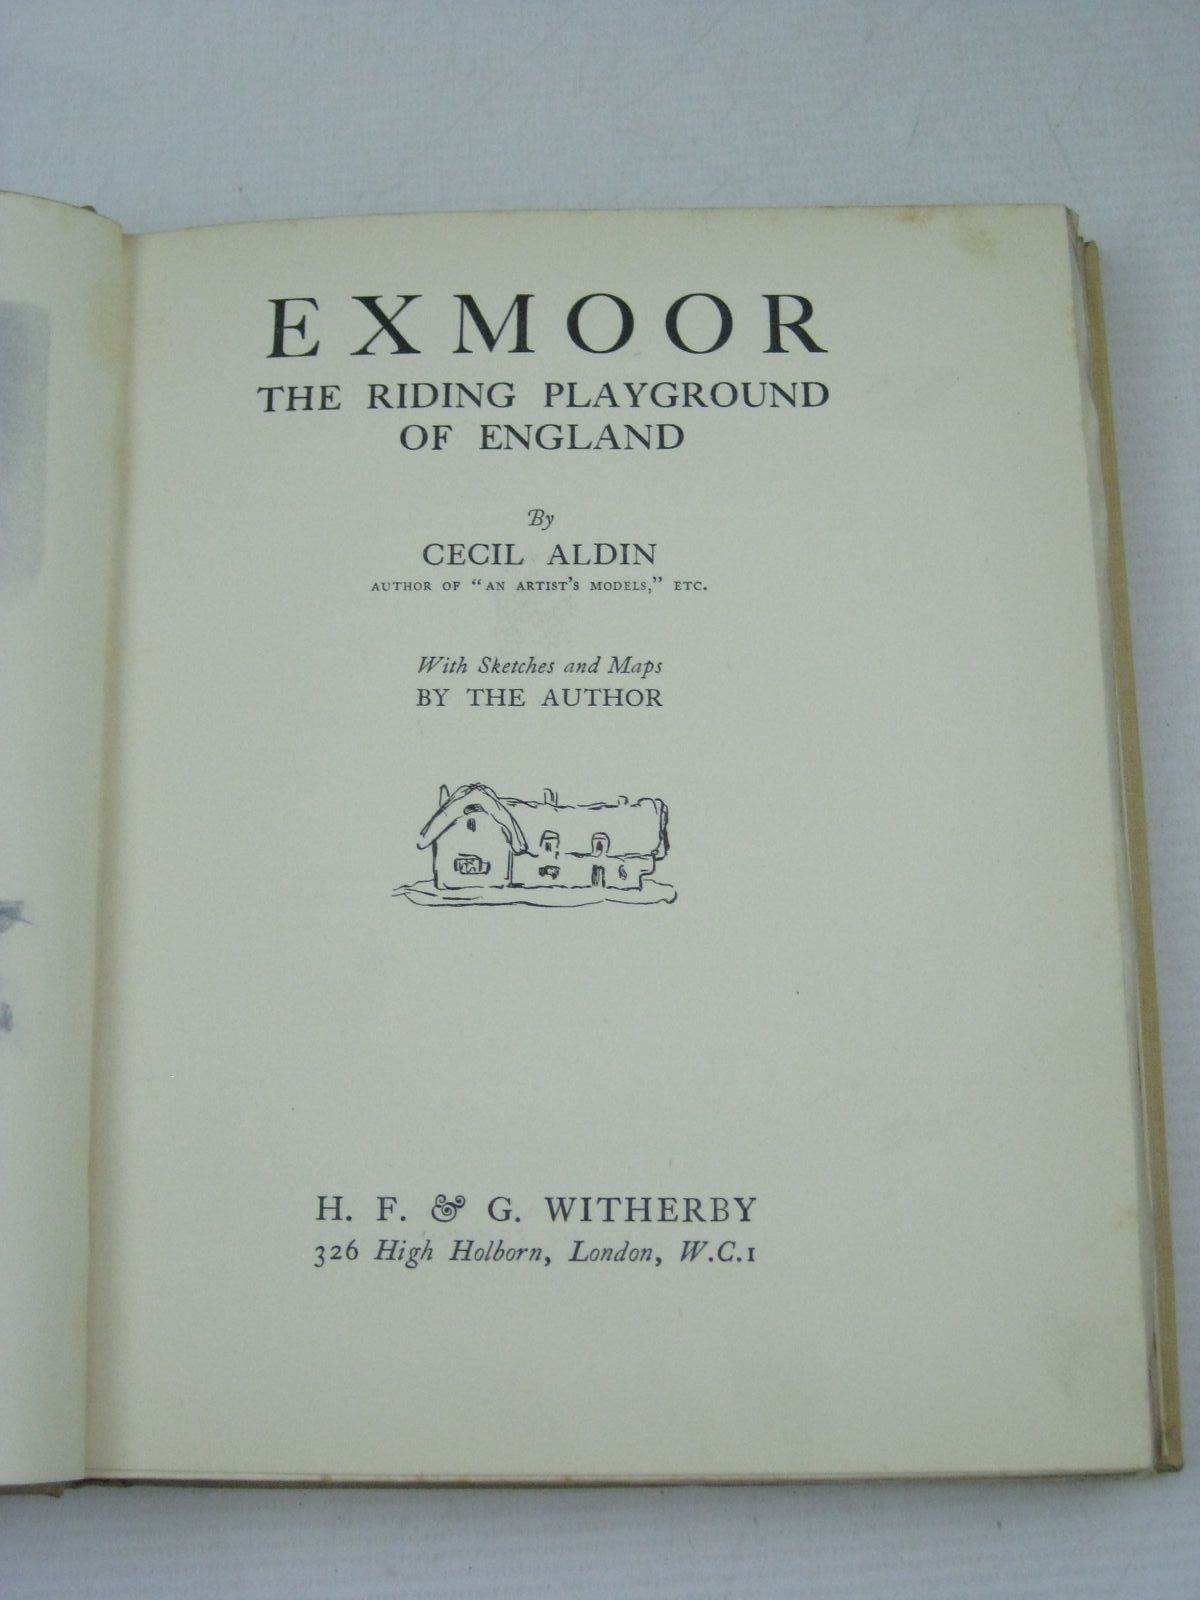 Photo of EXMOOR - THE RIDING PLAYGROUND OF ENGLAND written by Aldin, Cecil illustrated by Aldin, Cecil published by H. F. & G. Witherby (STOCK CODE: 1405205)  for sale by Stella & Rose's Books